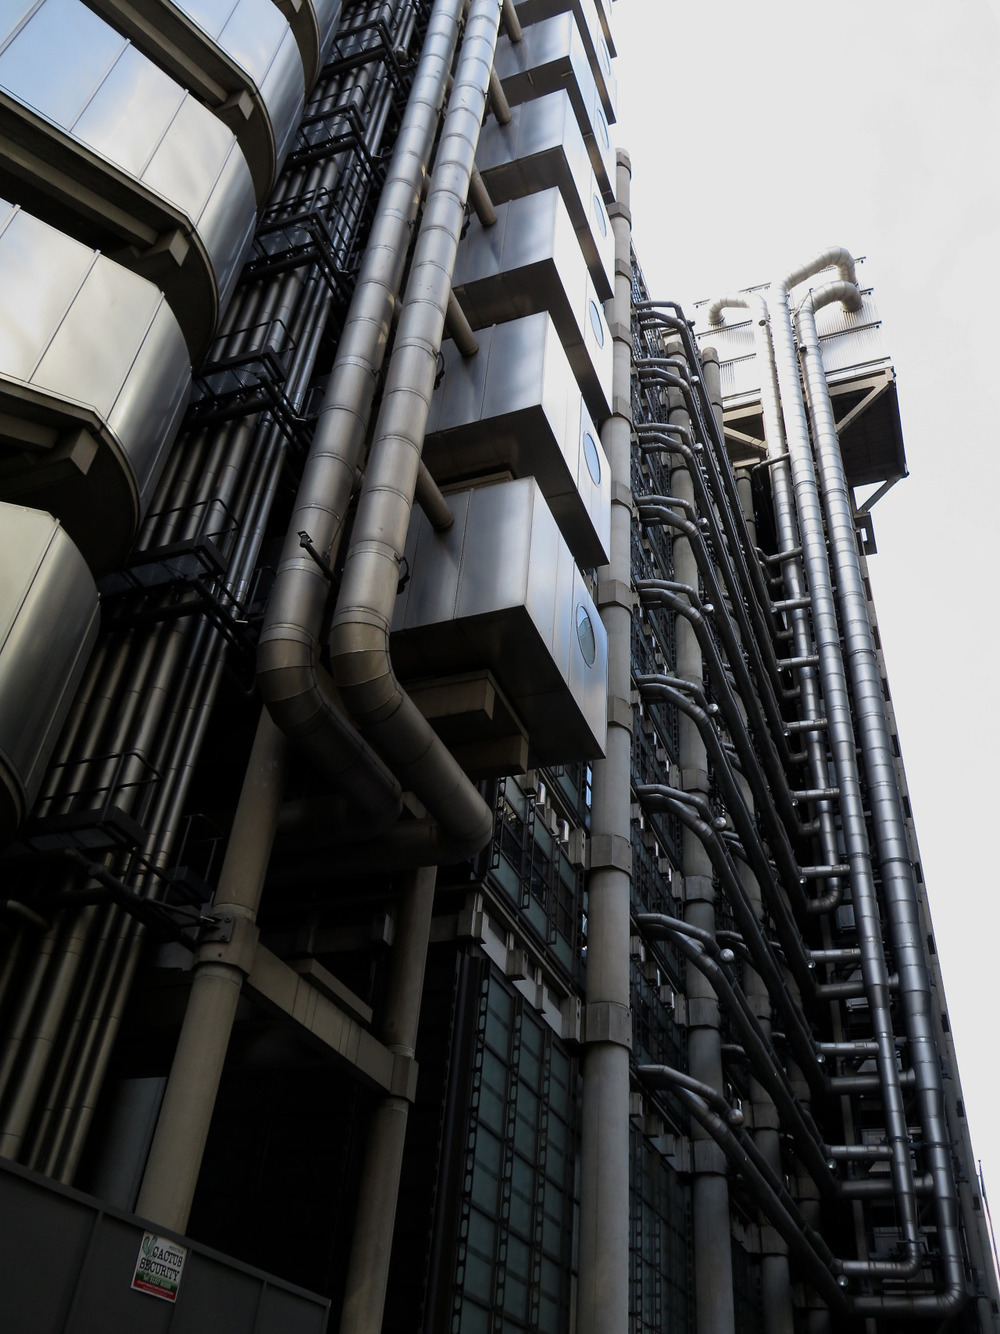 Richard Rodgers Lloyds Building in London. Serious techno pipes…